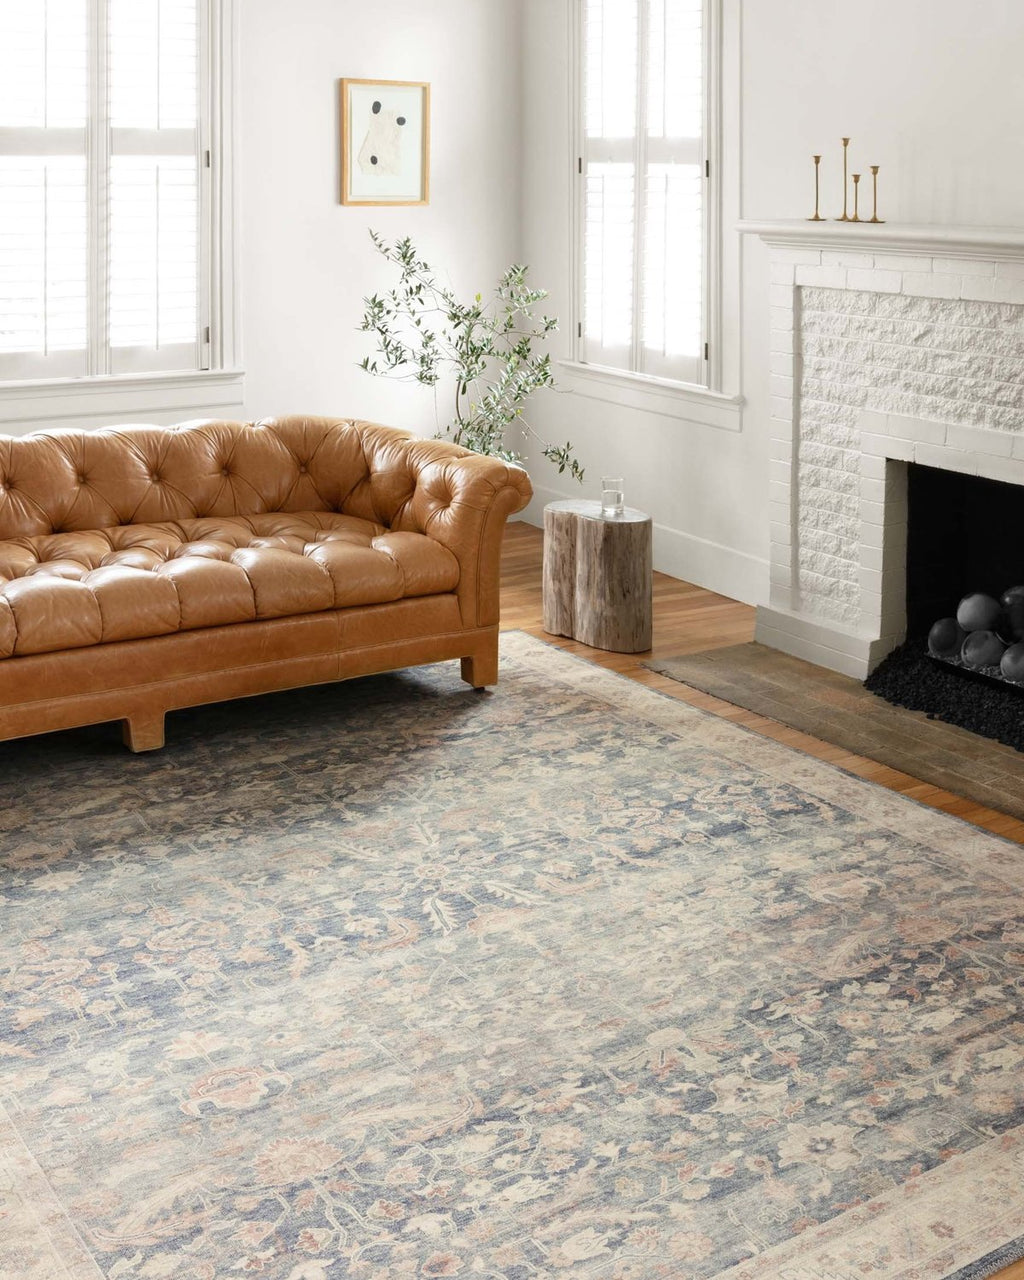 Hathaway Collection Rug in Denim / Multi